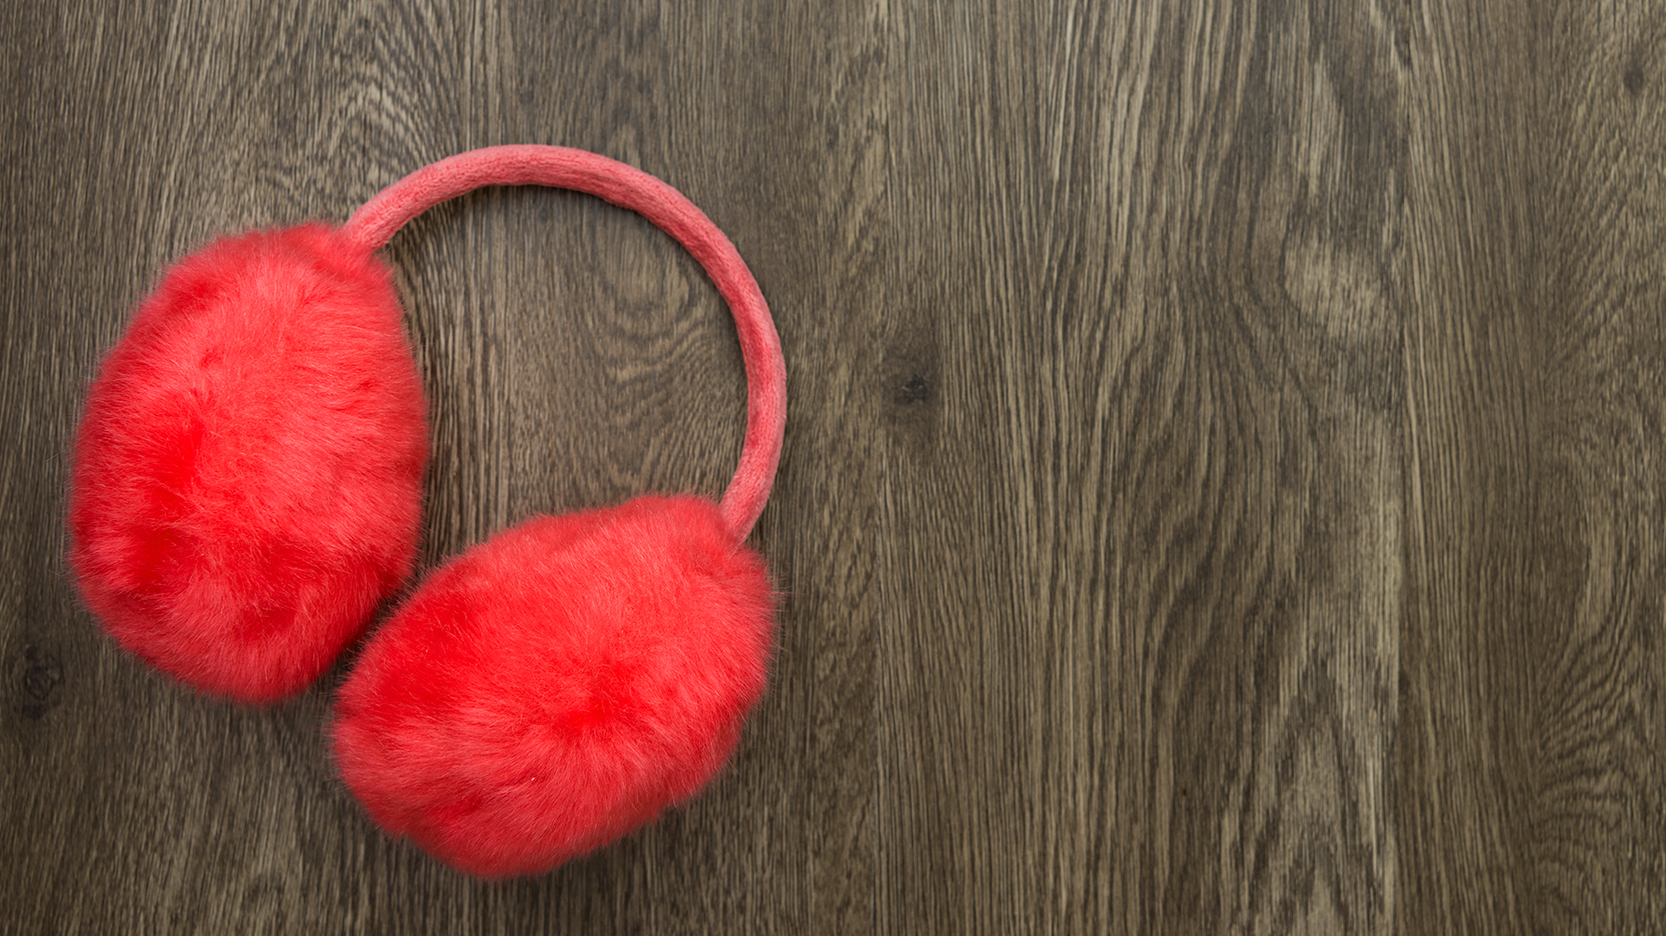 Earmuffs (invented by a 15-year-old)